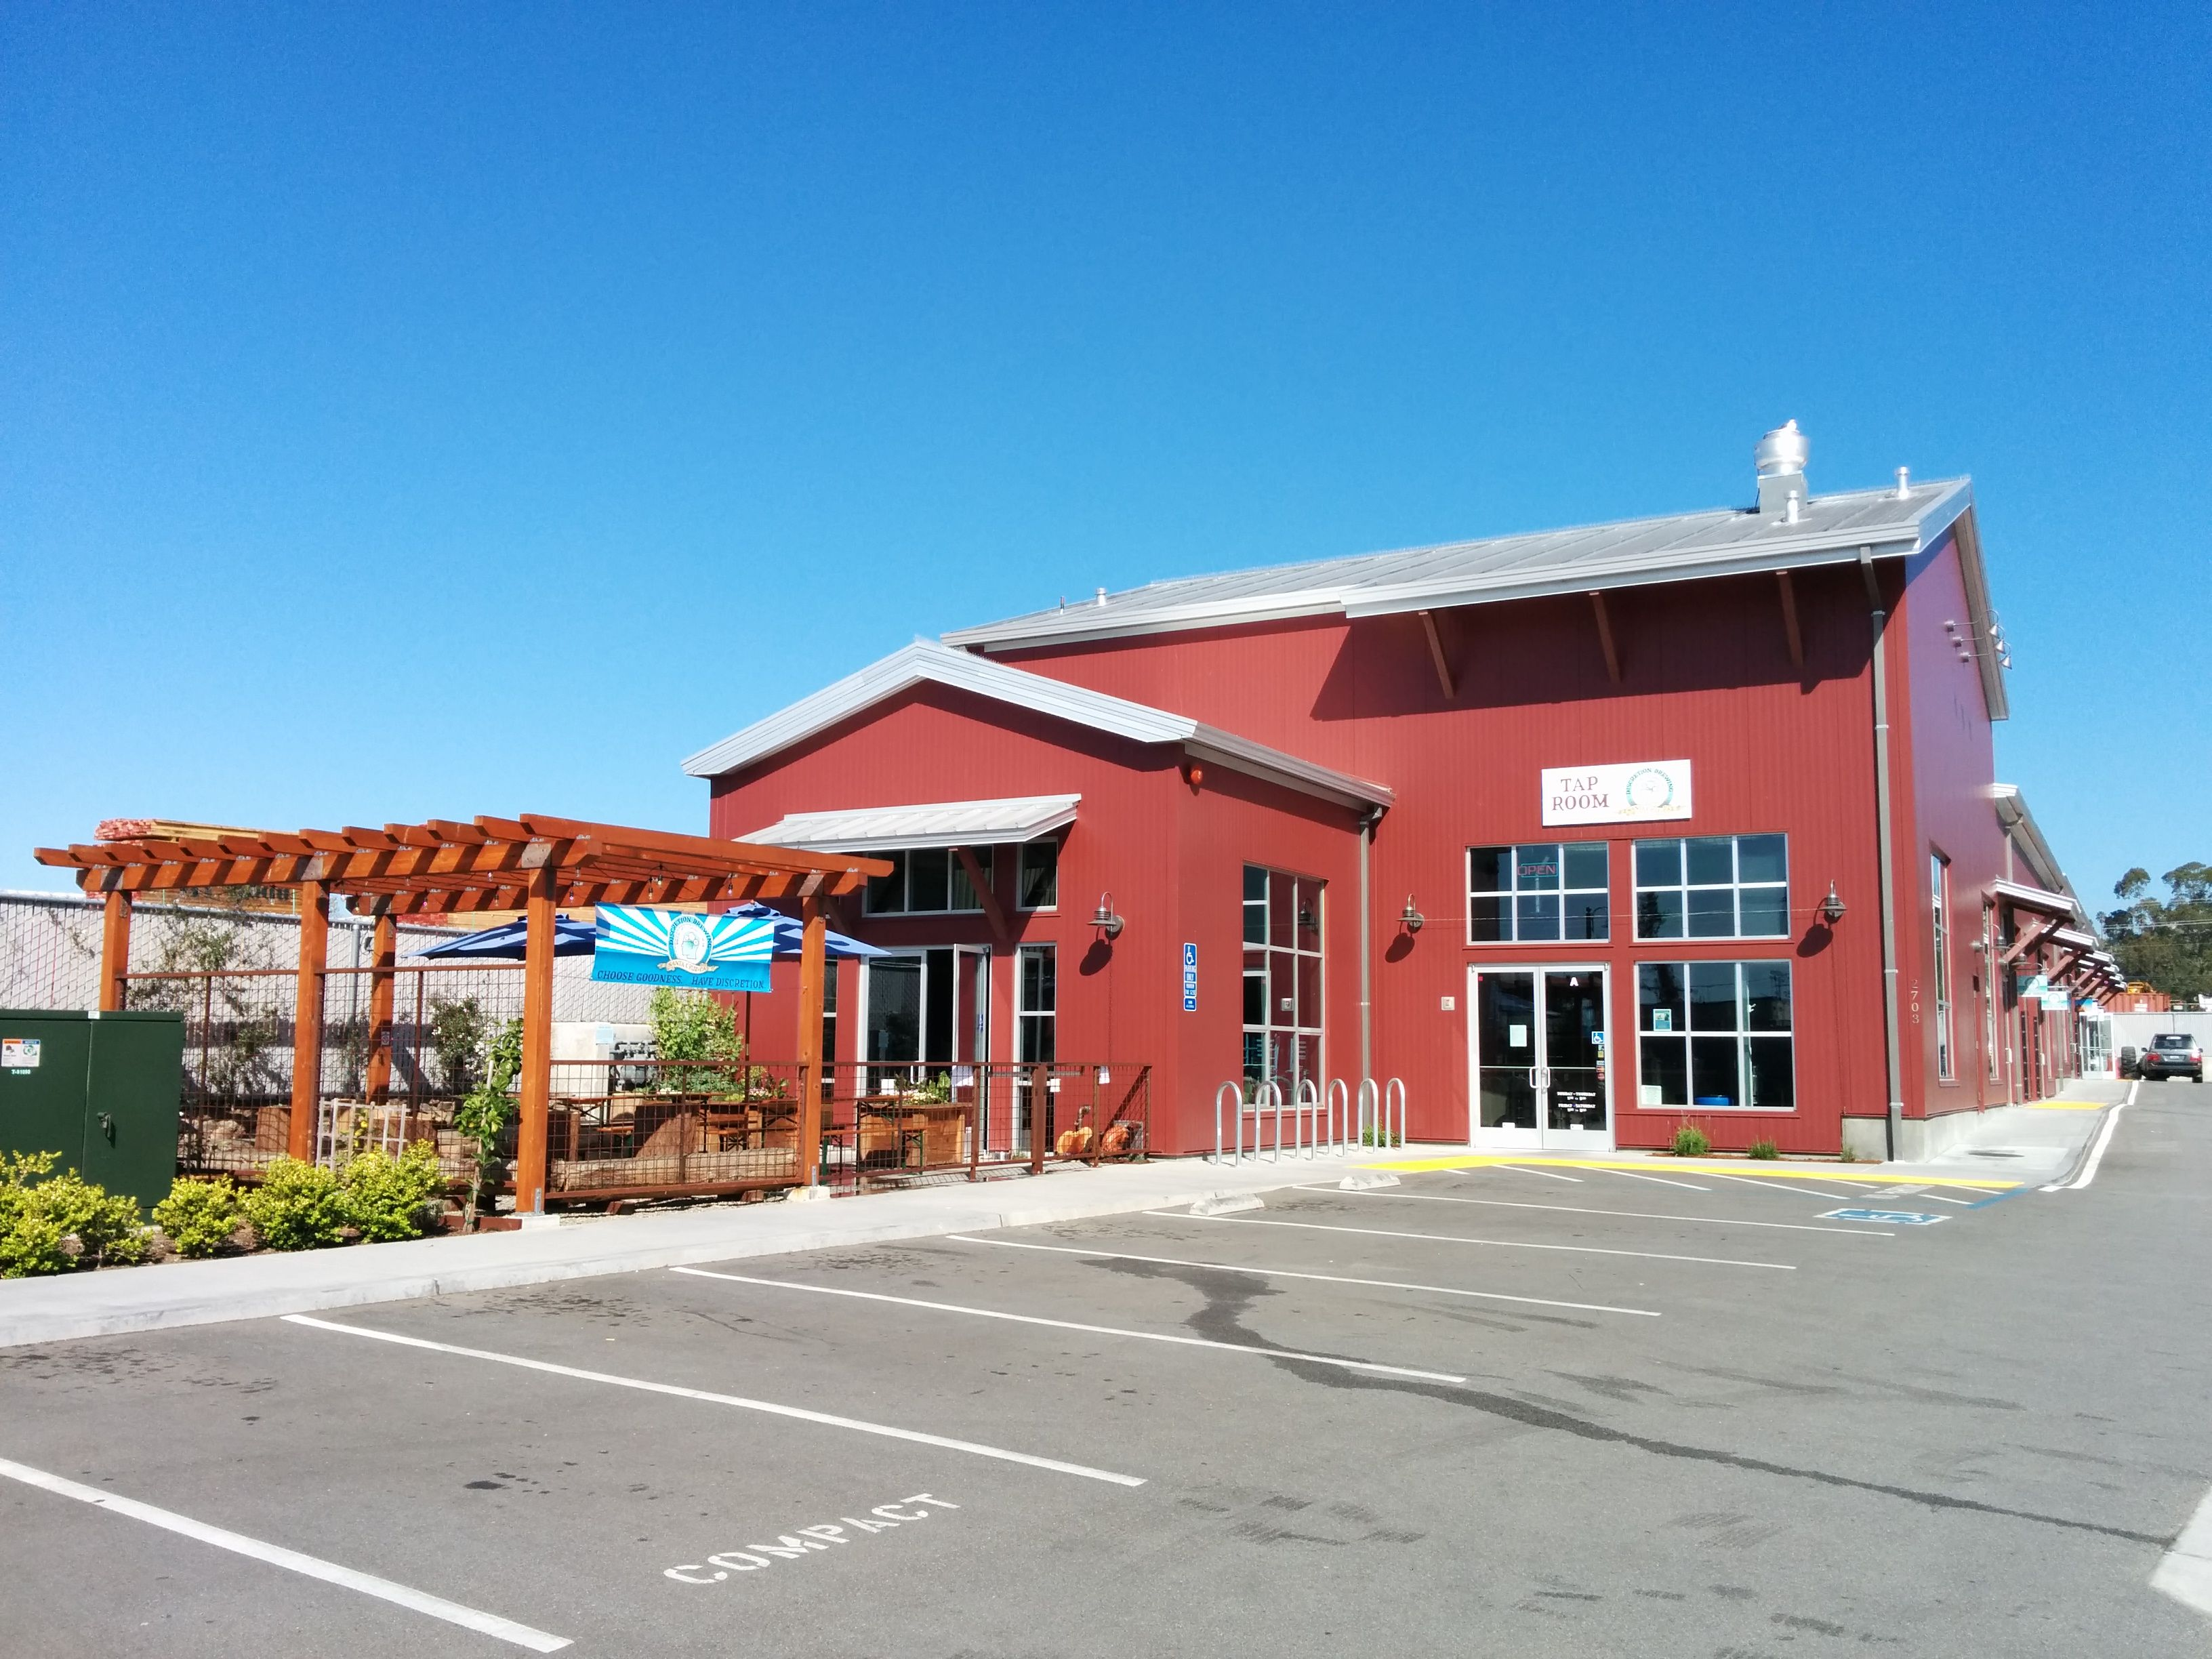 Discretion brewing 2703 41st ave soquel ca tap room